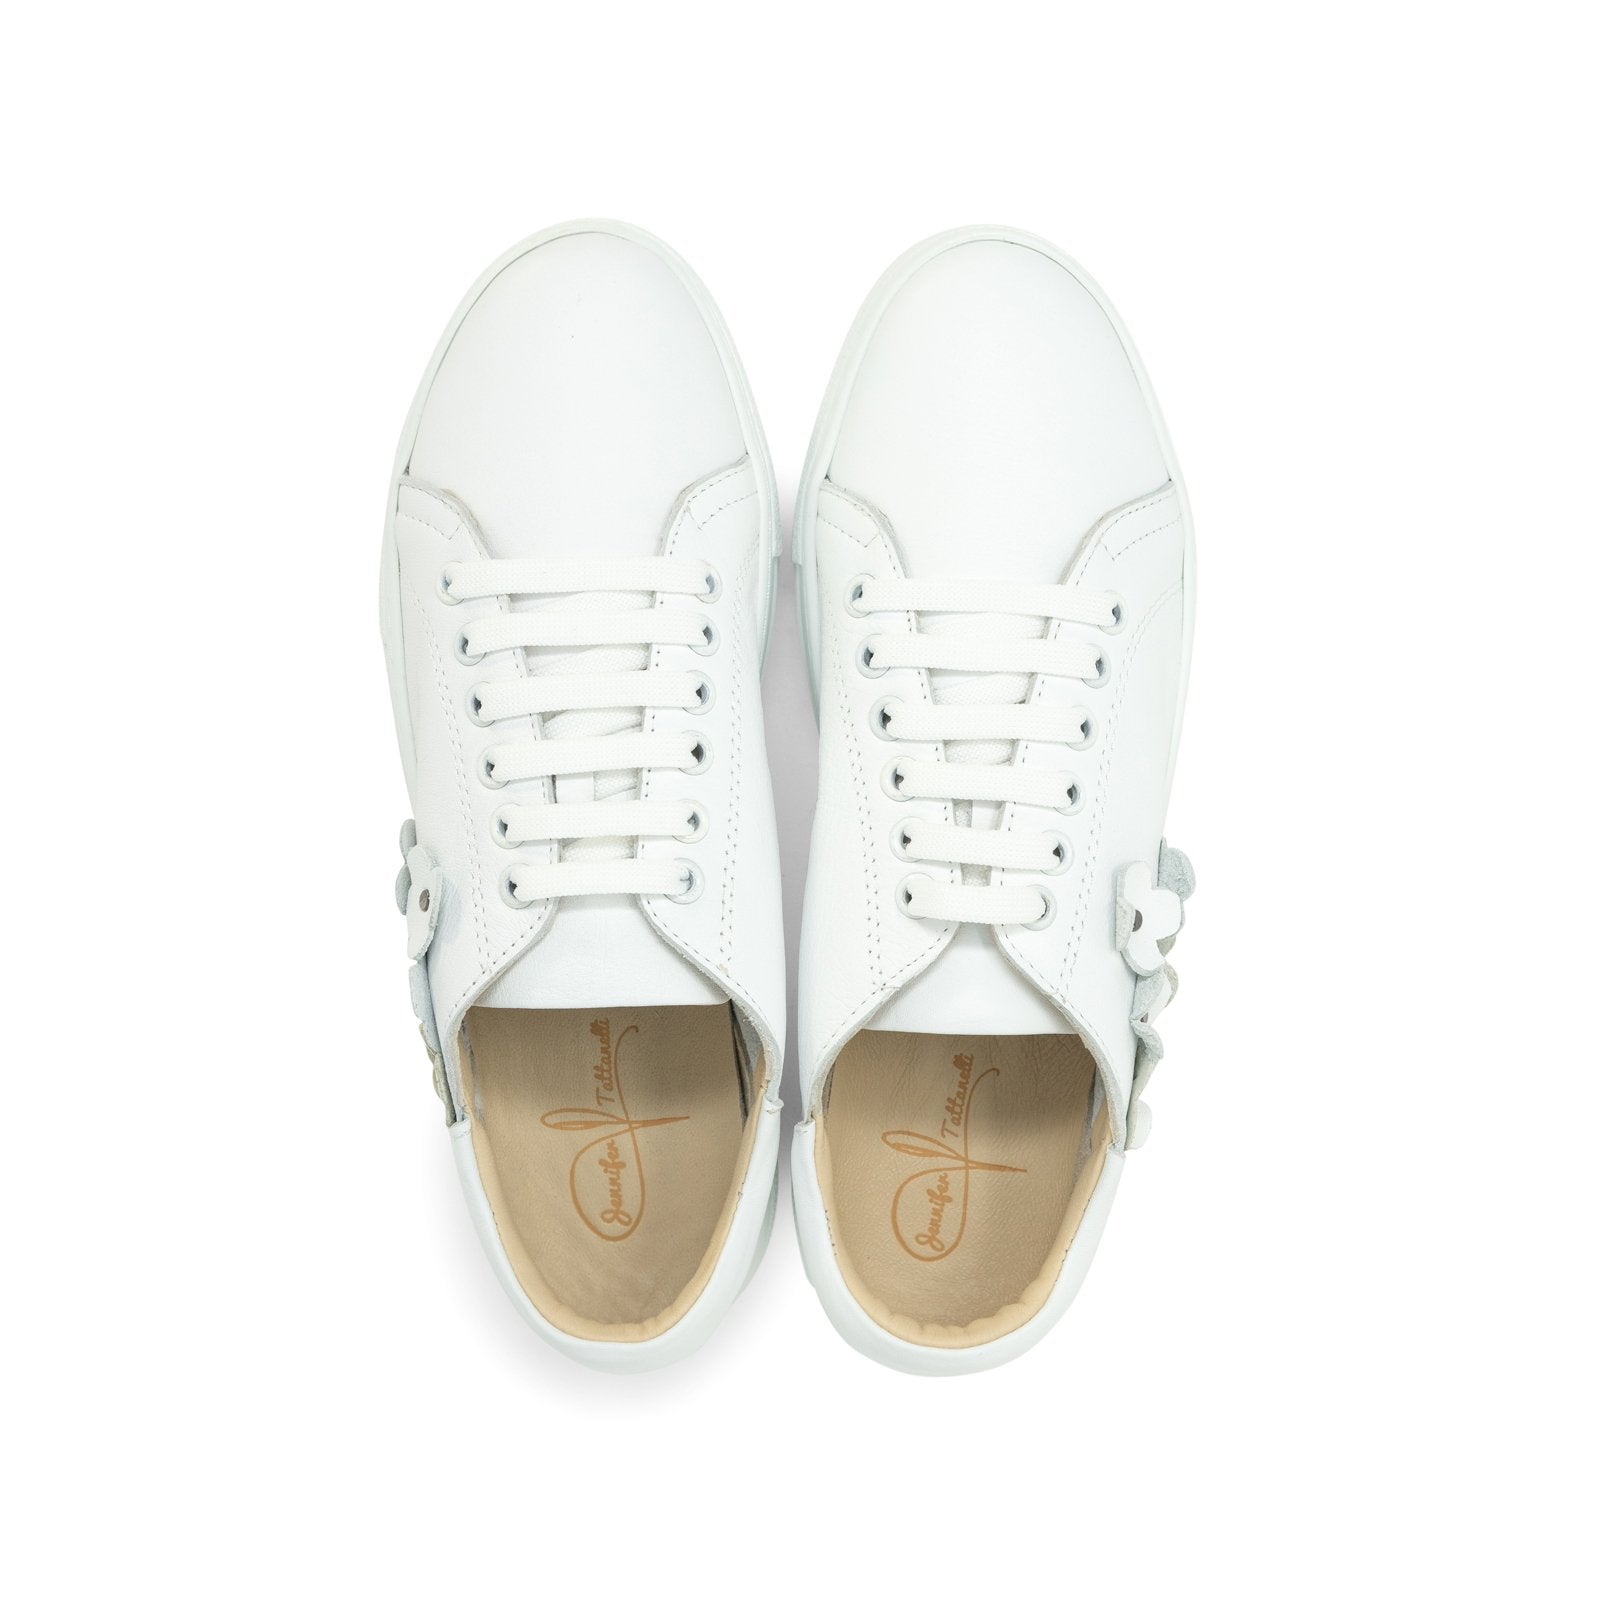 Women Flower Memory Foam Sneakers in White - Jennifer Tattanelli